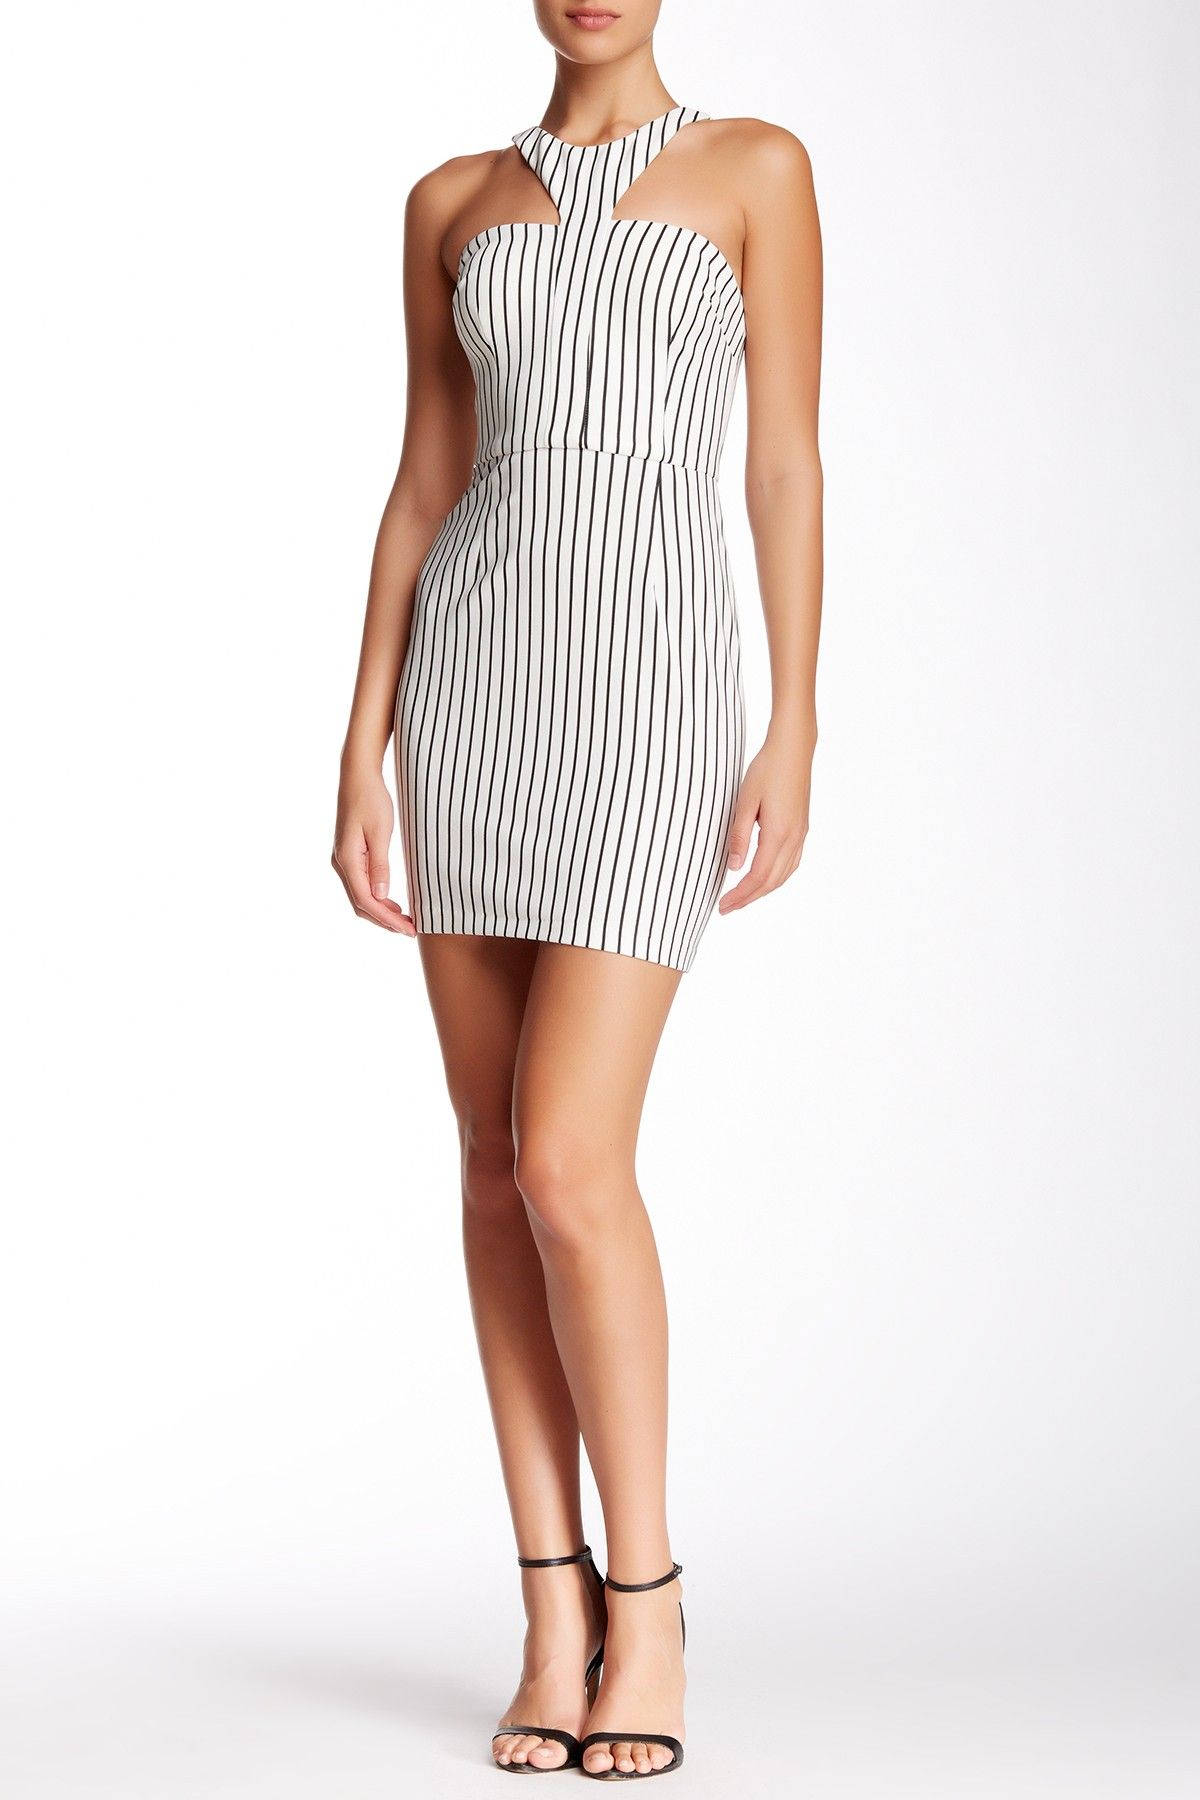 Hailey Logan by Adrianna Papell | Striped Ottoman Fitted Dress | Nordstrom Rack